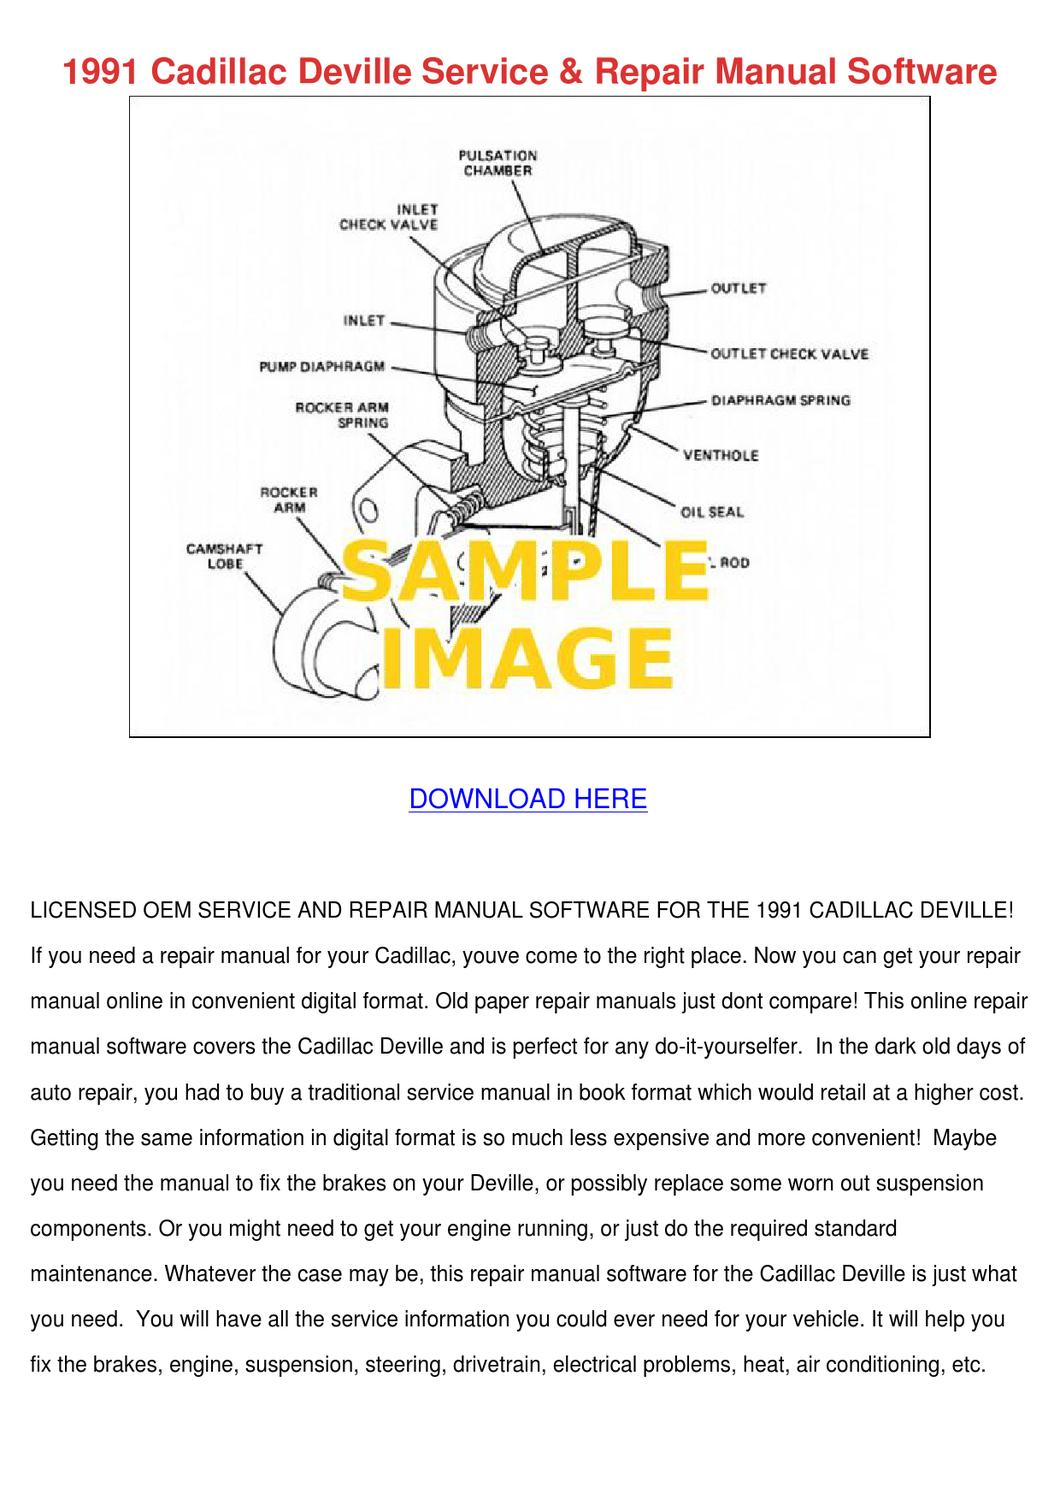 1991 Cadillac Deville Service Repair Manual S by FeliciaDaily - issuu